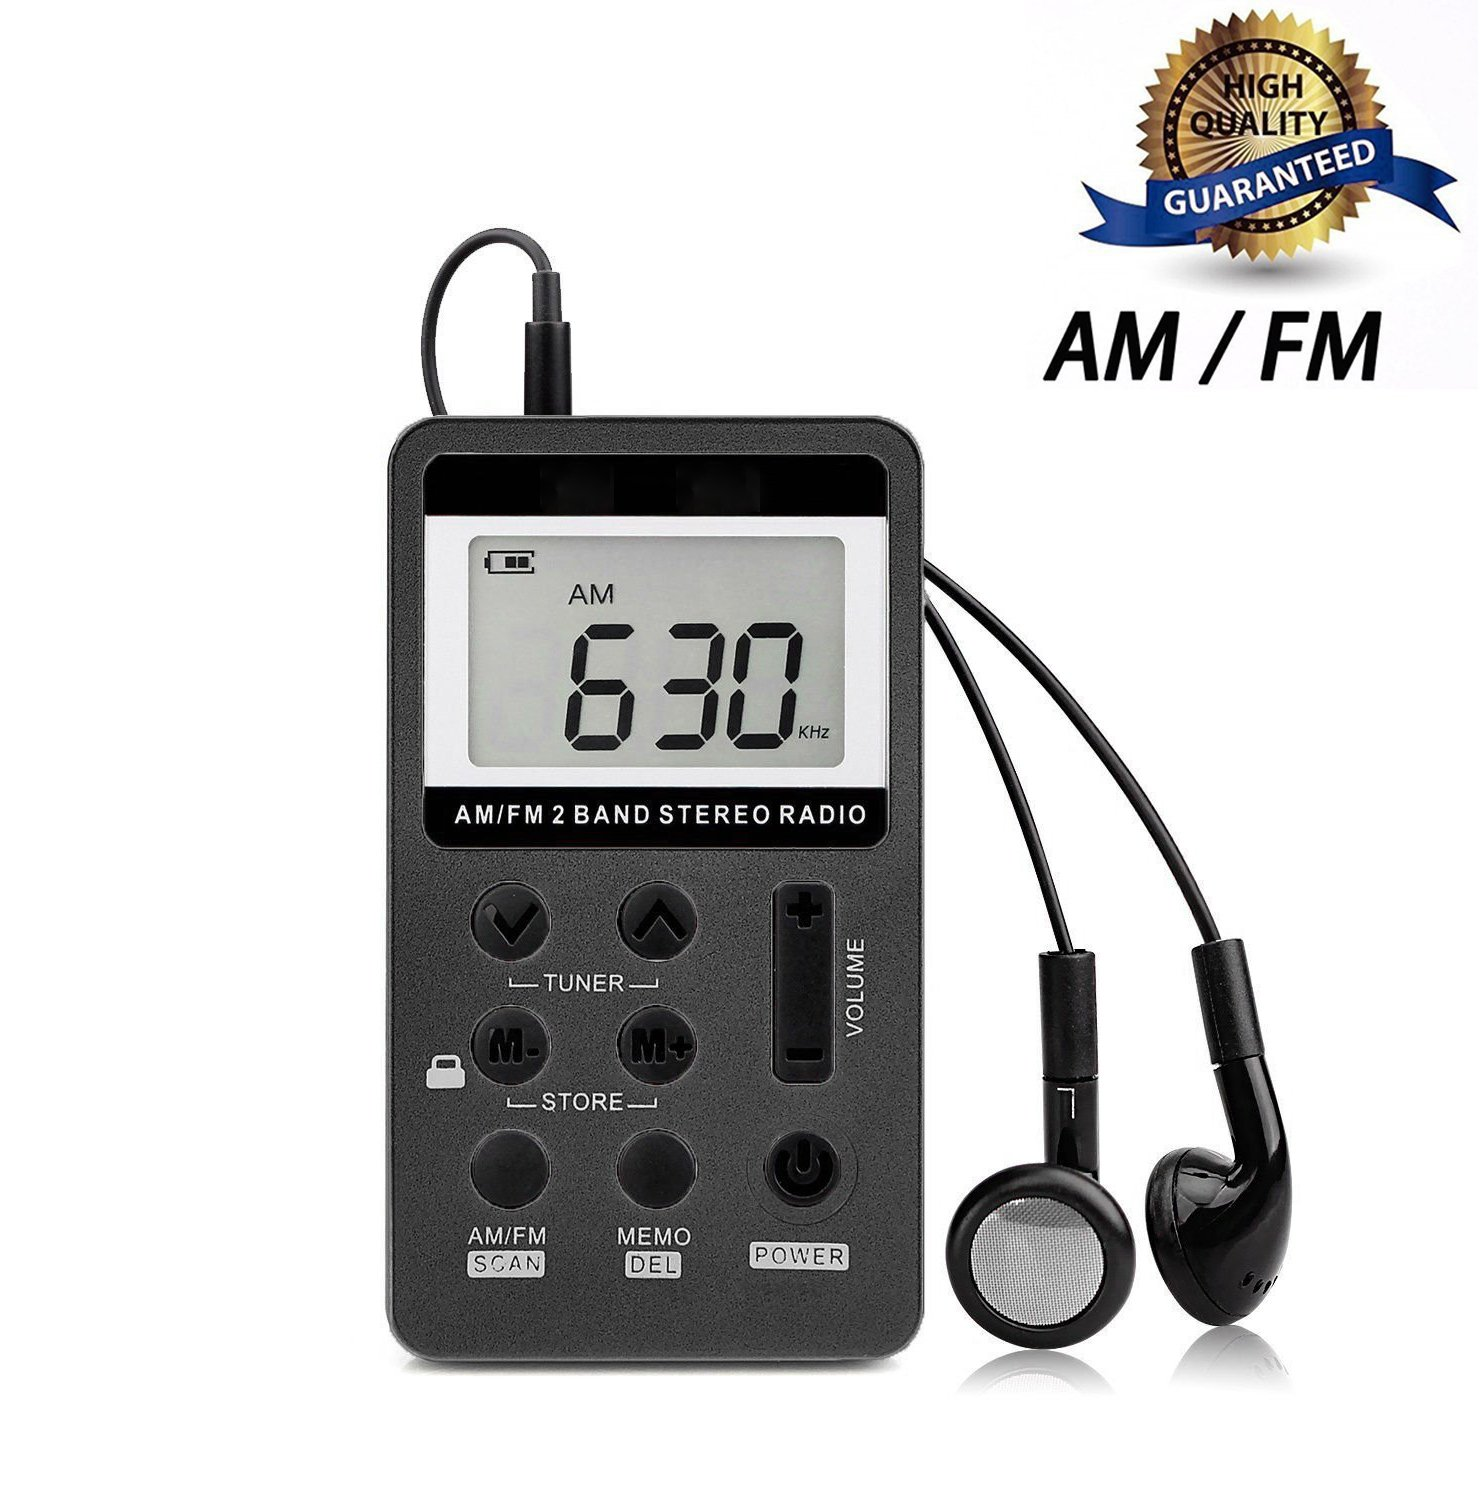 Pocket Radio, Mini AM FM Digital Portable Radio Portable With LCD Screen/Rechargeable Battery And The Earbuds For Walk .(Black)